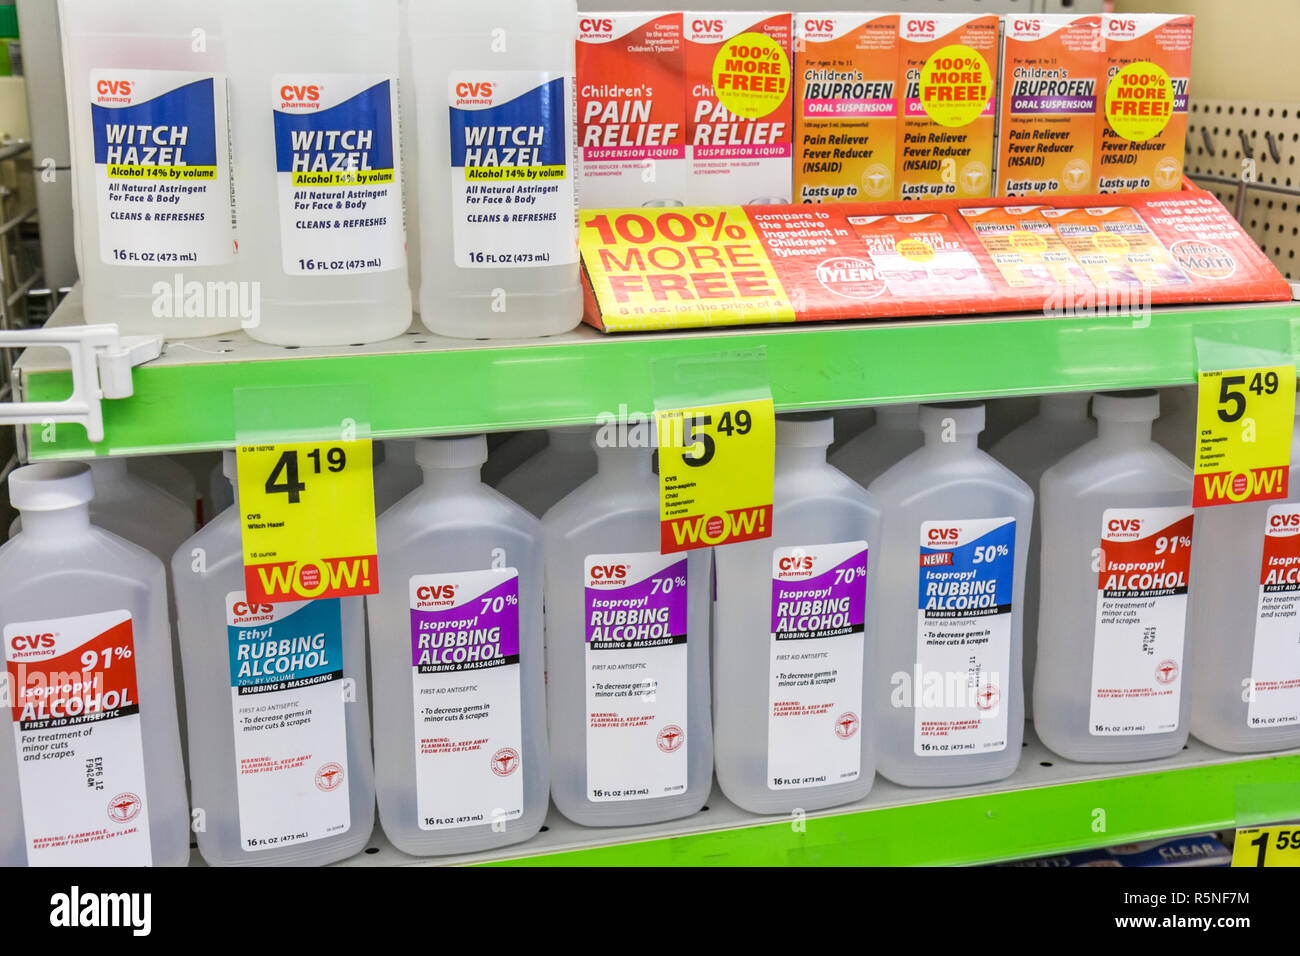 Miami Beach Florida 5th Street CVS Pharmacy drug store shelf